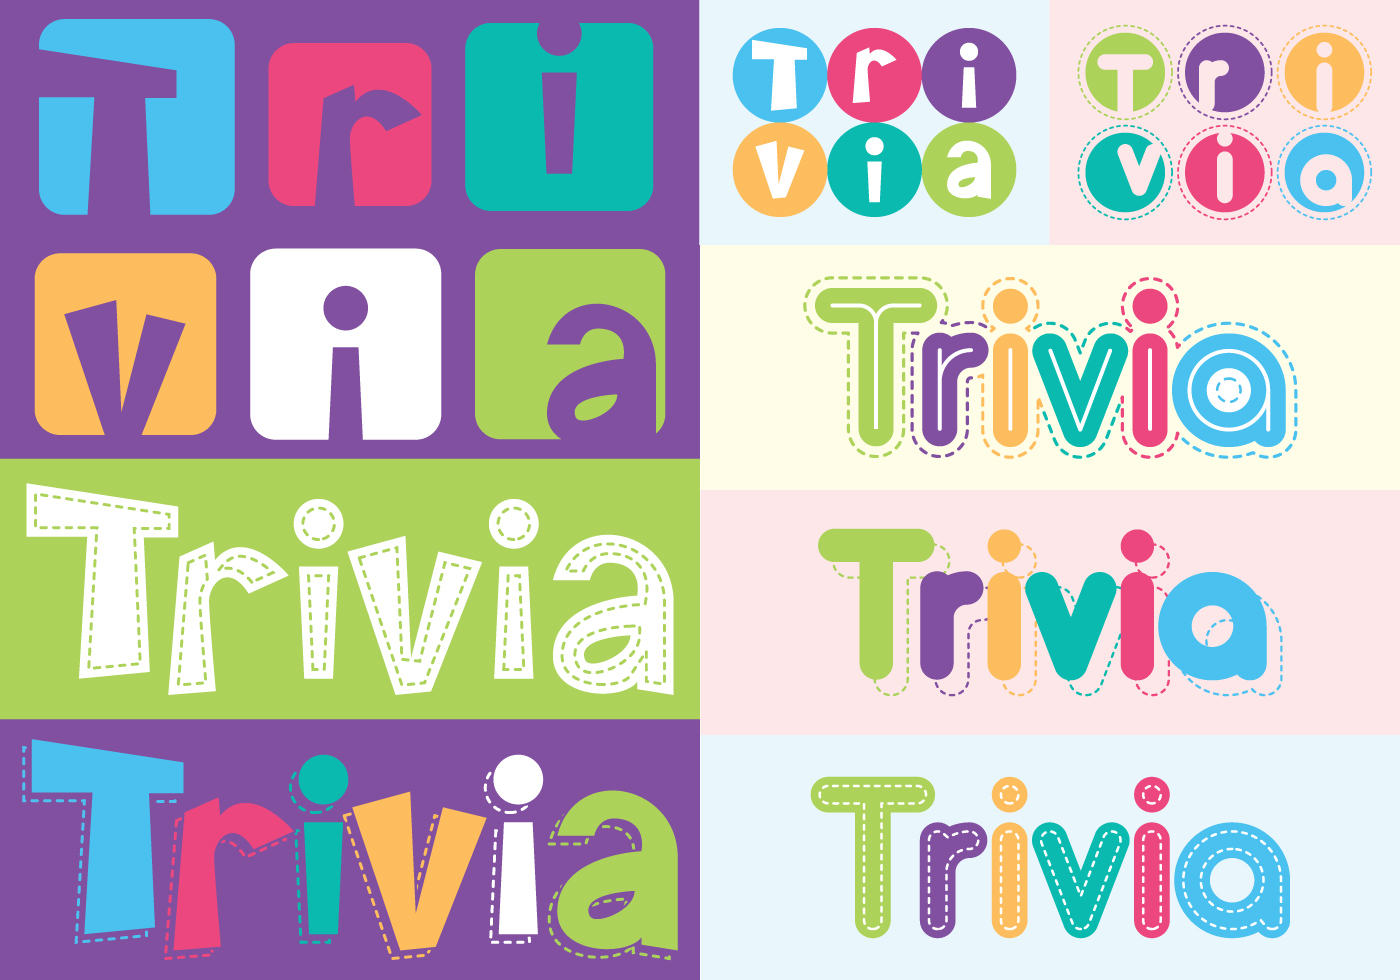 trivia lettering text - Download Free Vector Art, Stock ... - photo#47